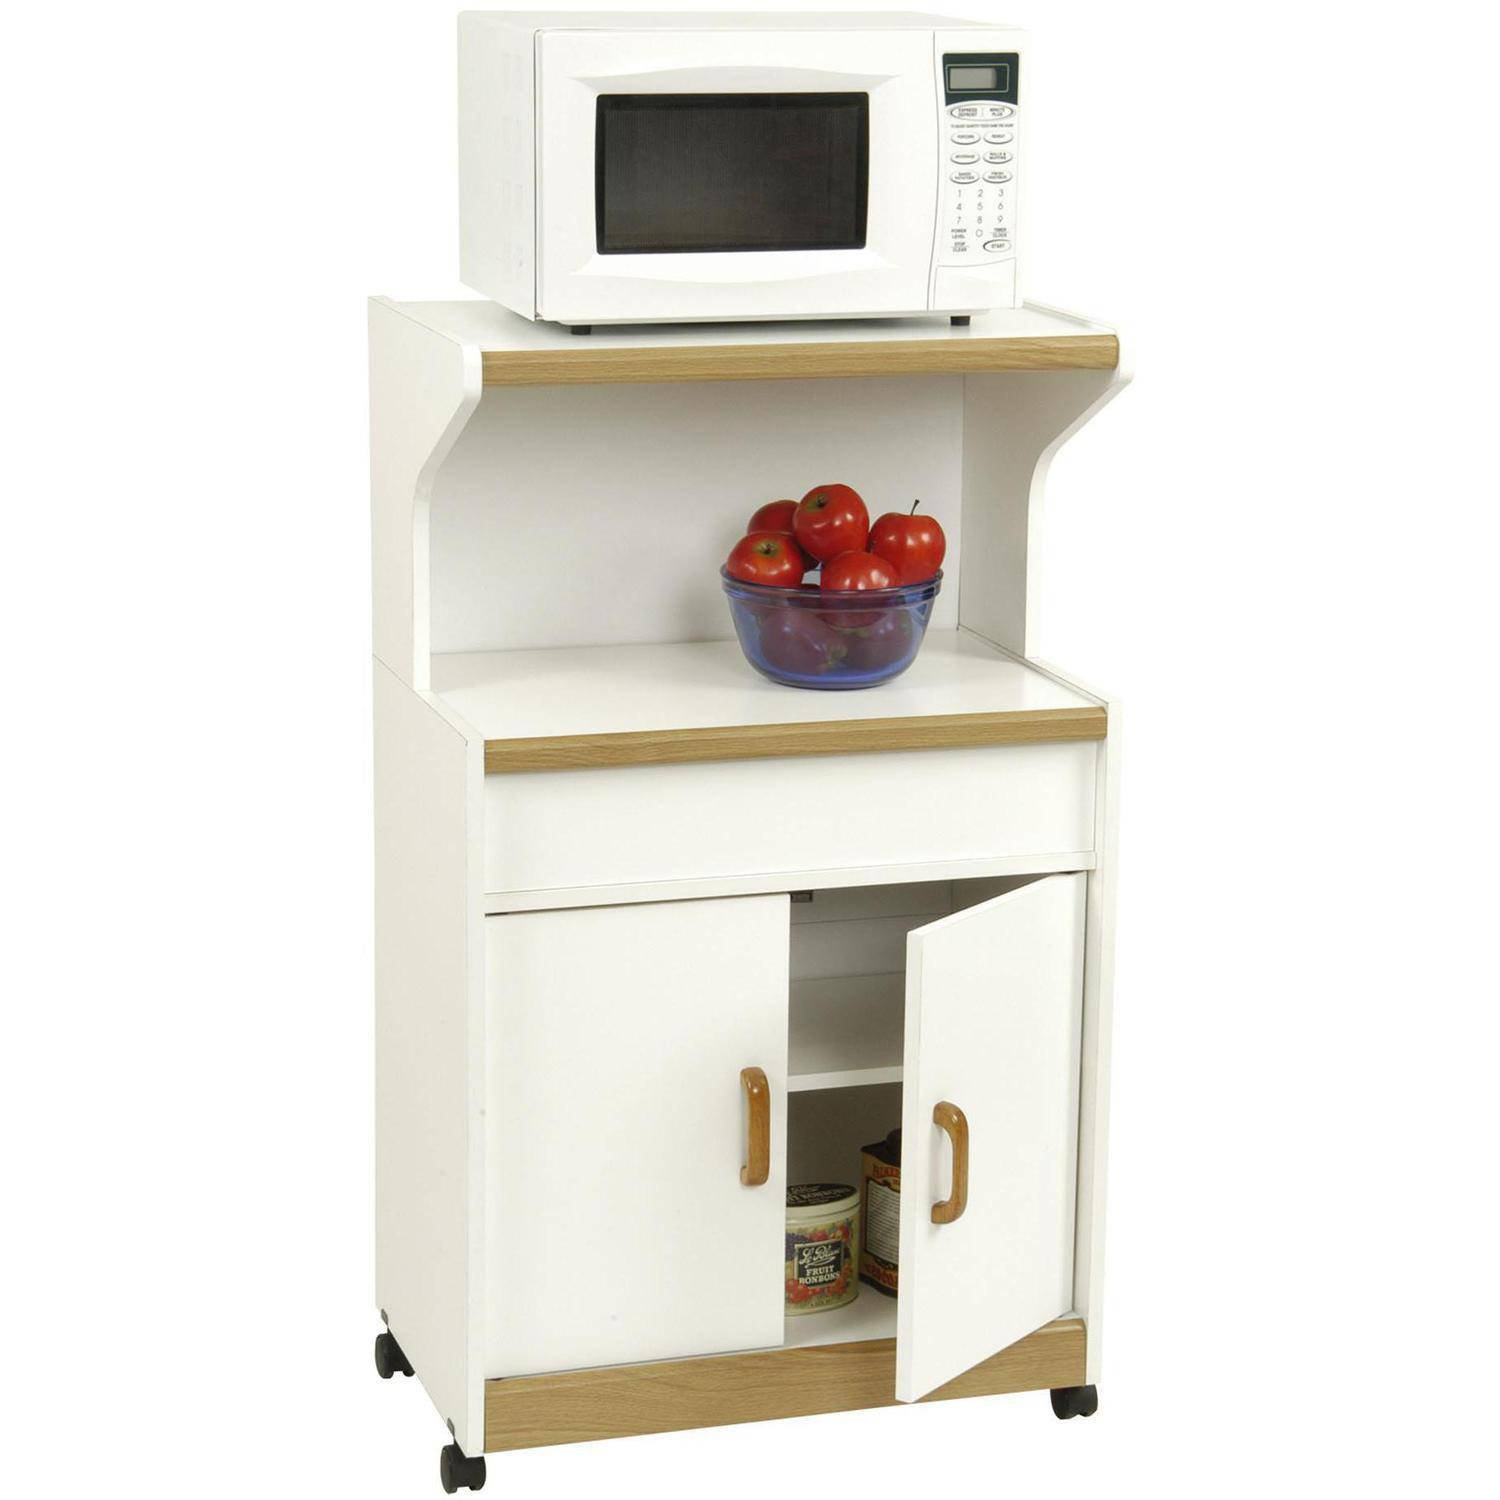 Ameriwood 4574GM Microwave Cart W Storage Cabinet Space In